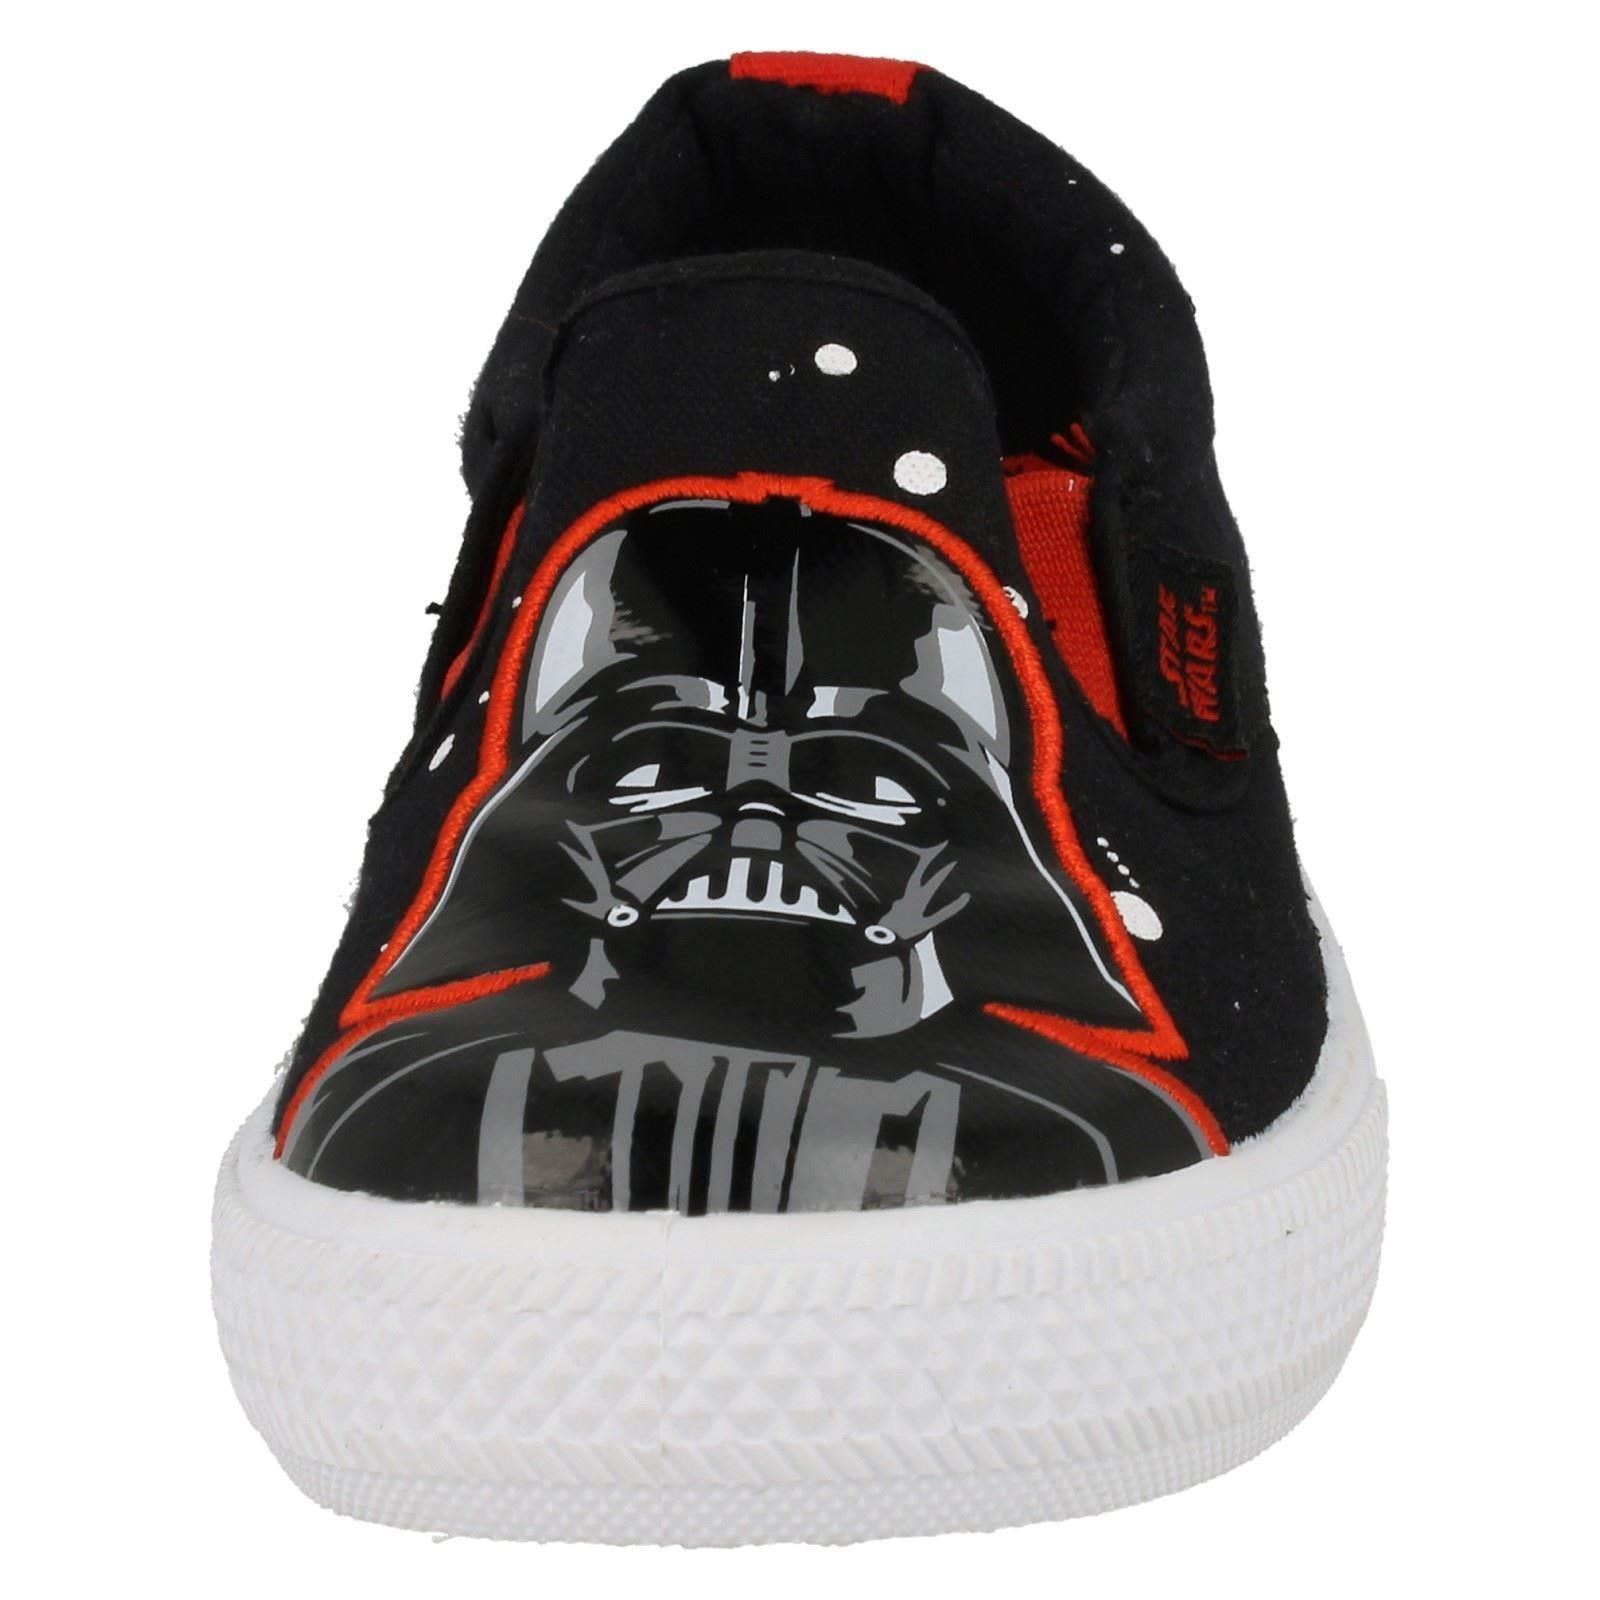 Give in to the Dark Side and get your junior Sith Lord the coolest footwear in the galaxy with these boy's Star Wars athletic shoes from CATAPULT.